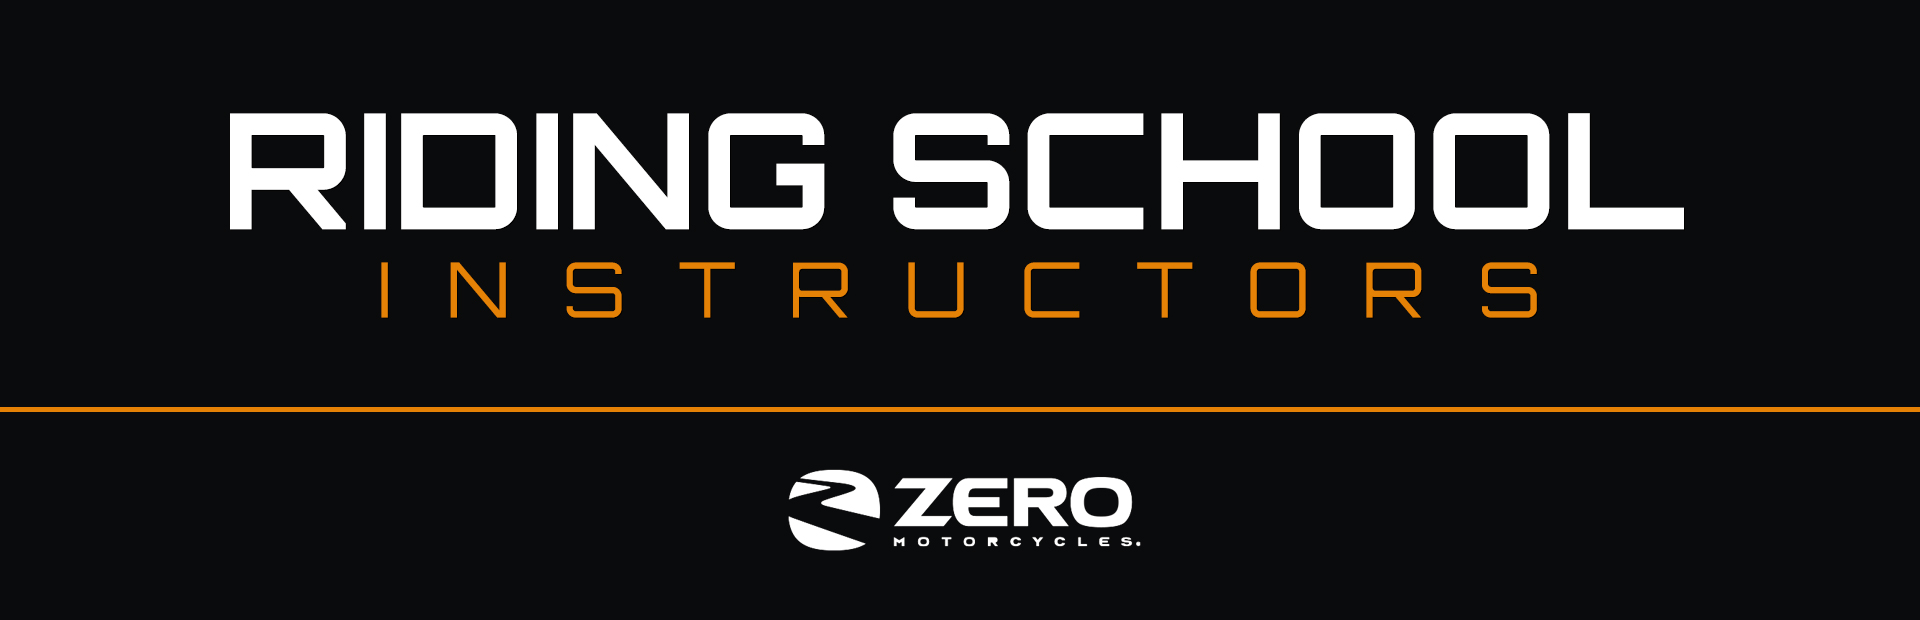 ZERO™: Riding School Instructors